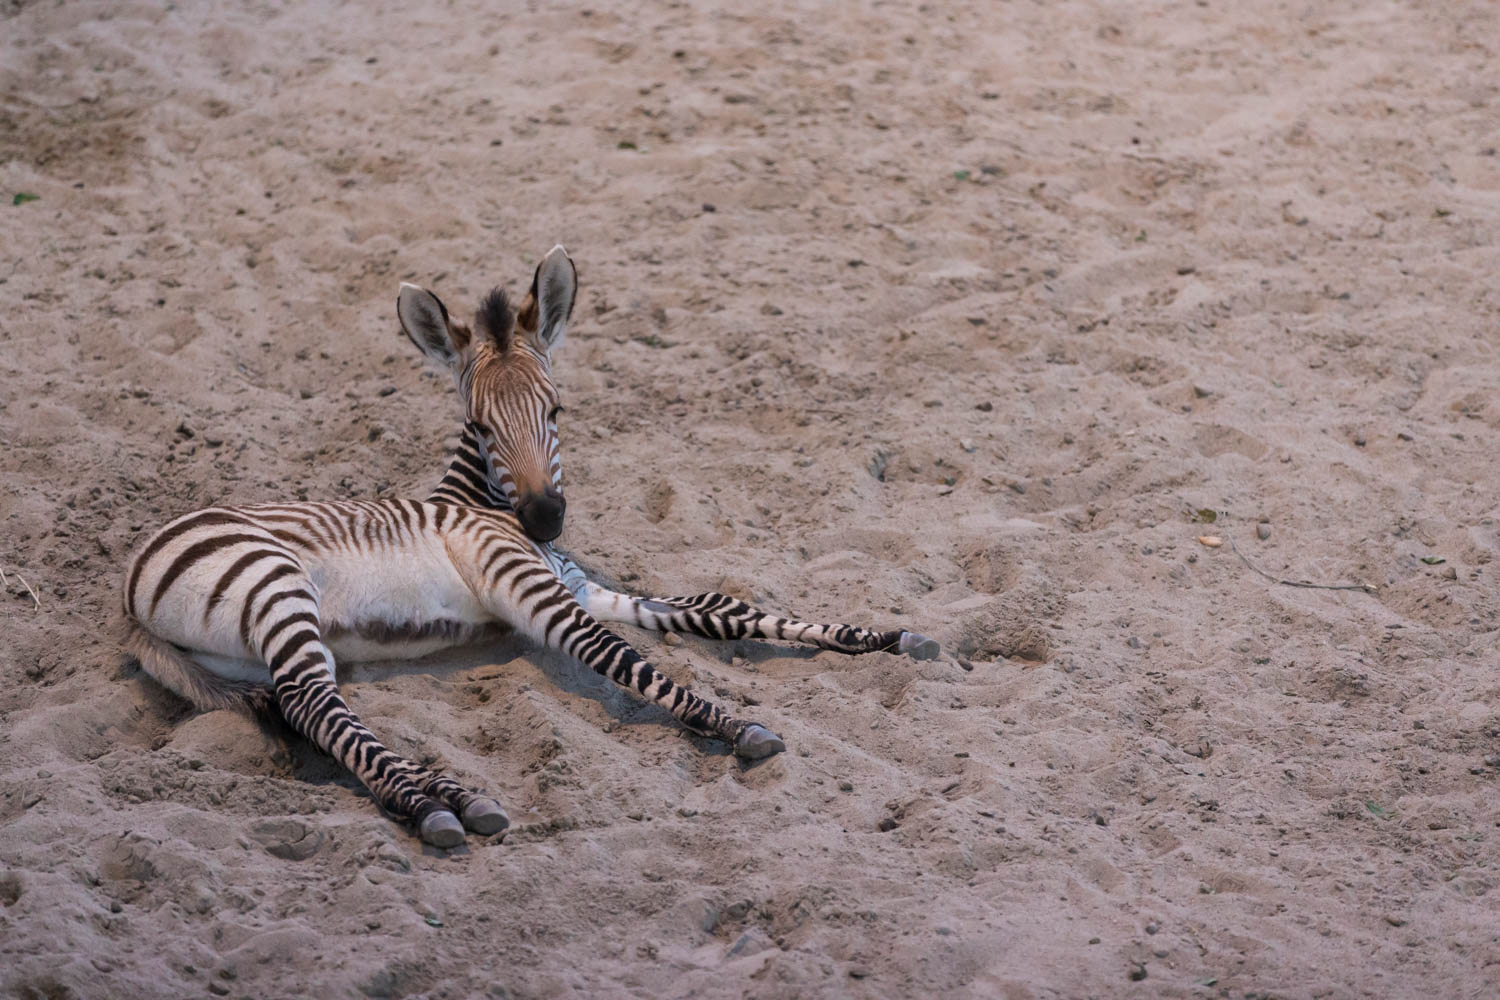 A baby zebra longs for SnapChat